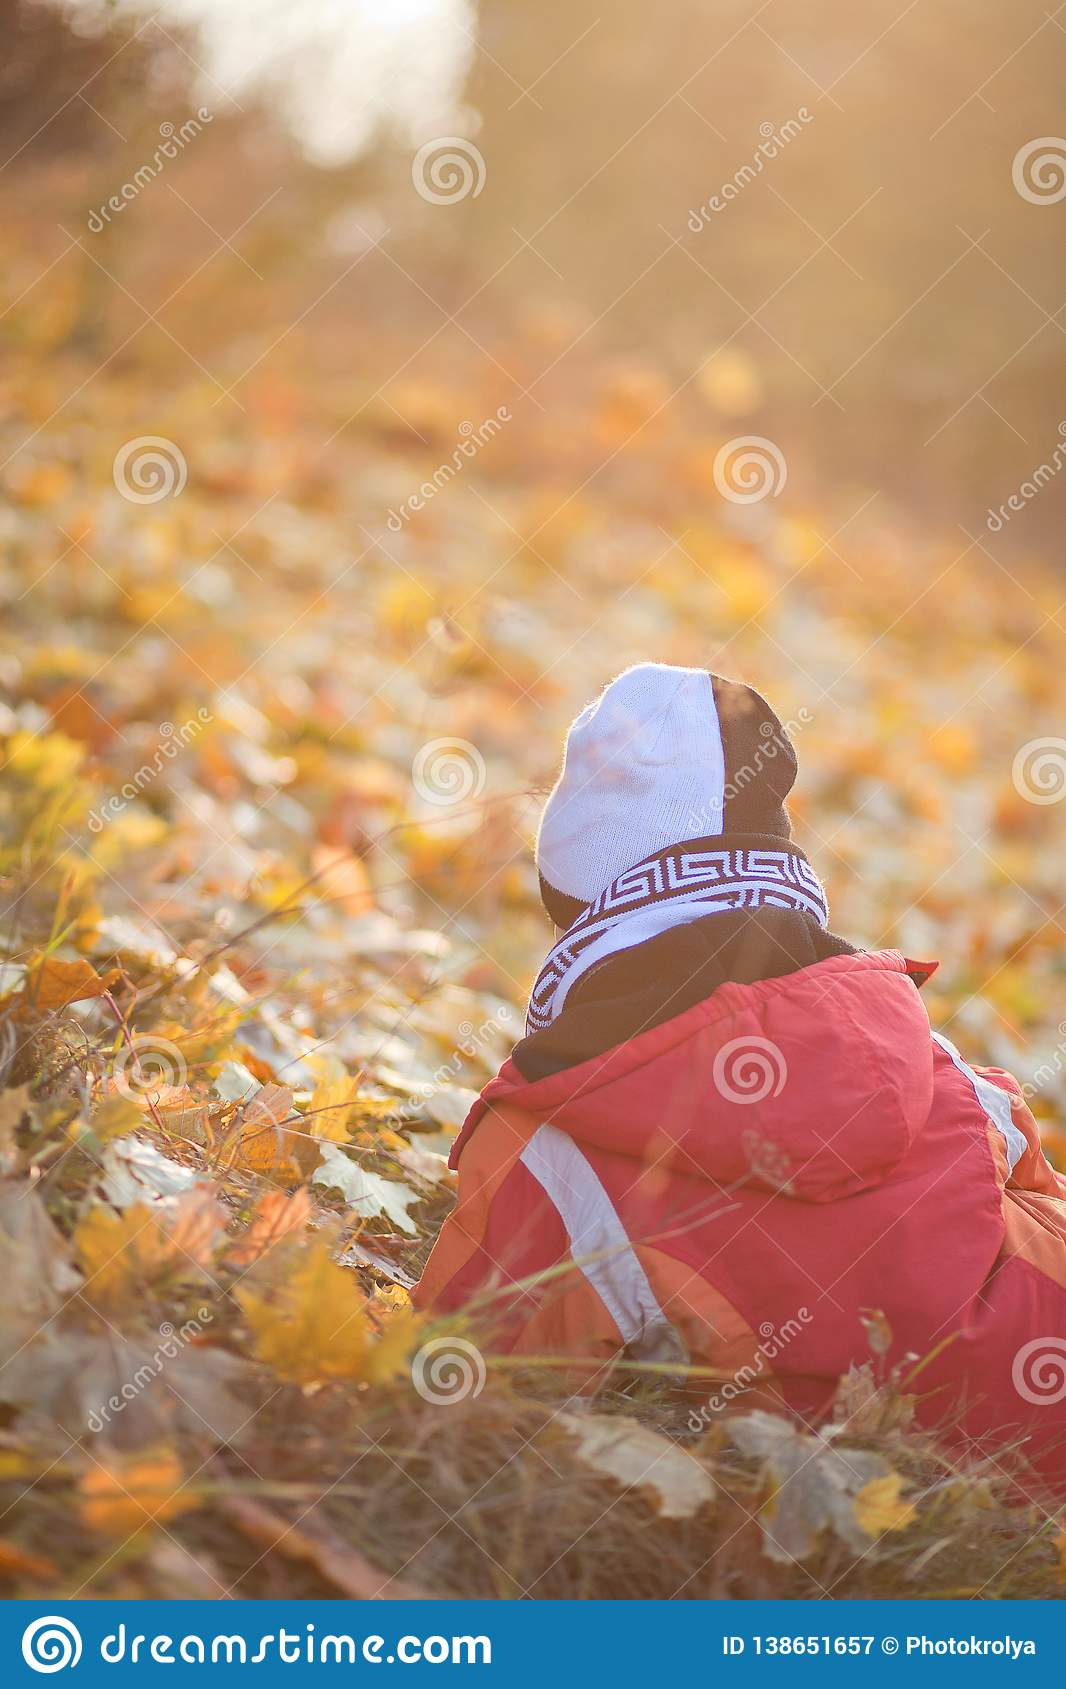 Child sitting and waithing yellow leaves in the autumn park.